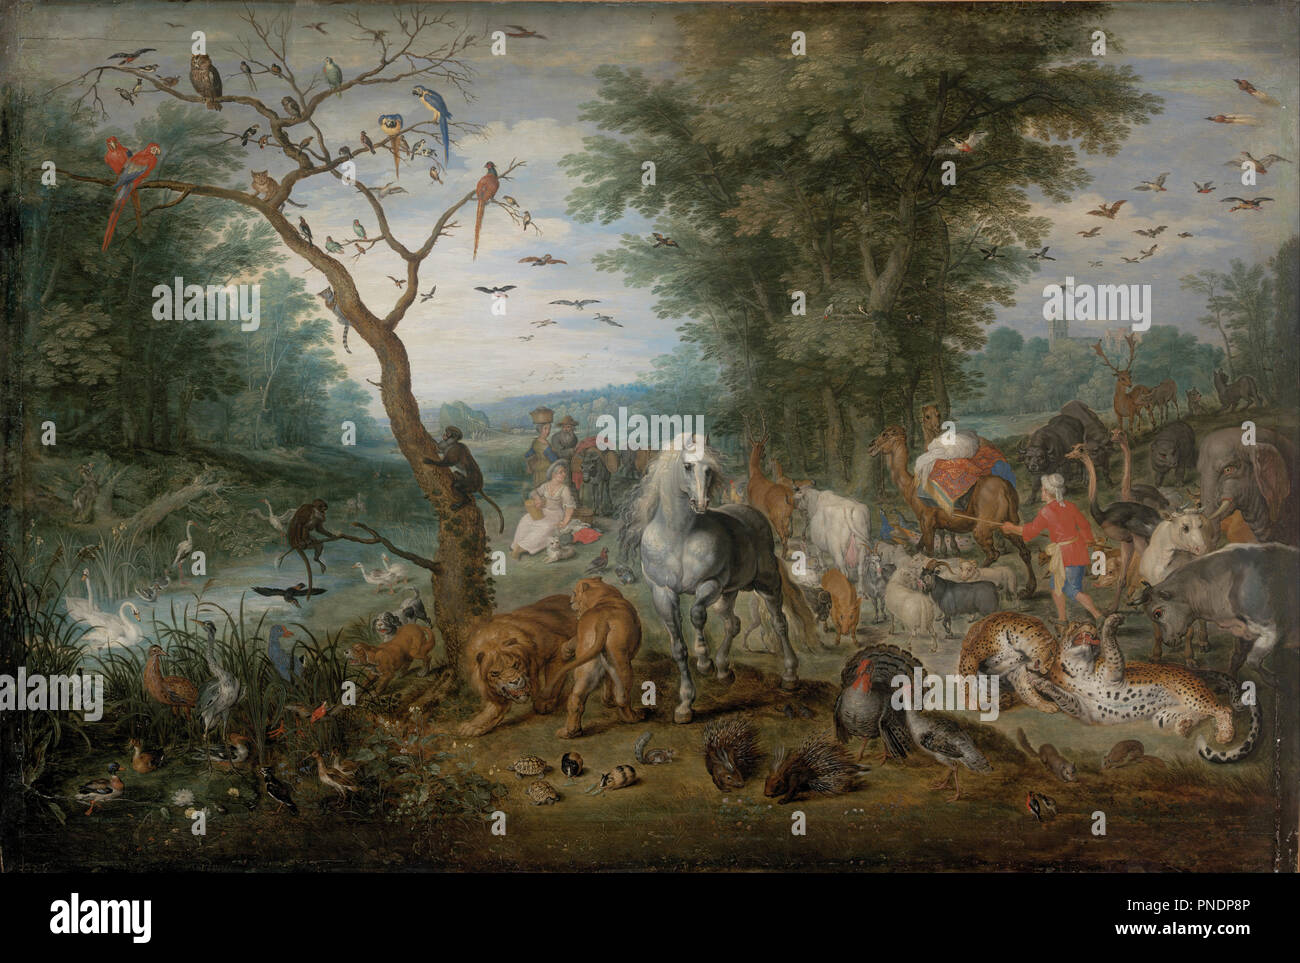 Paradise Landscape with Animals. Date/Period: From 1613 until 1615. Painting. Oil on panel. Height: 610 mm (24.01 in); Width: 902 mm (35.51 in). Author: Brueghel the Elder, jan. JAN BRUEGHEL, THE ELDER. Jan Snellink II. - Stock Image